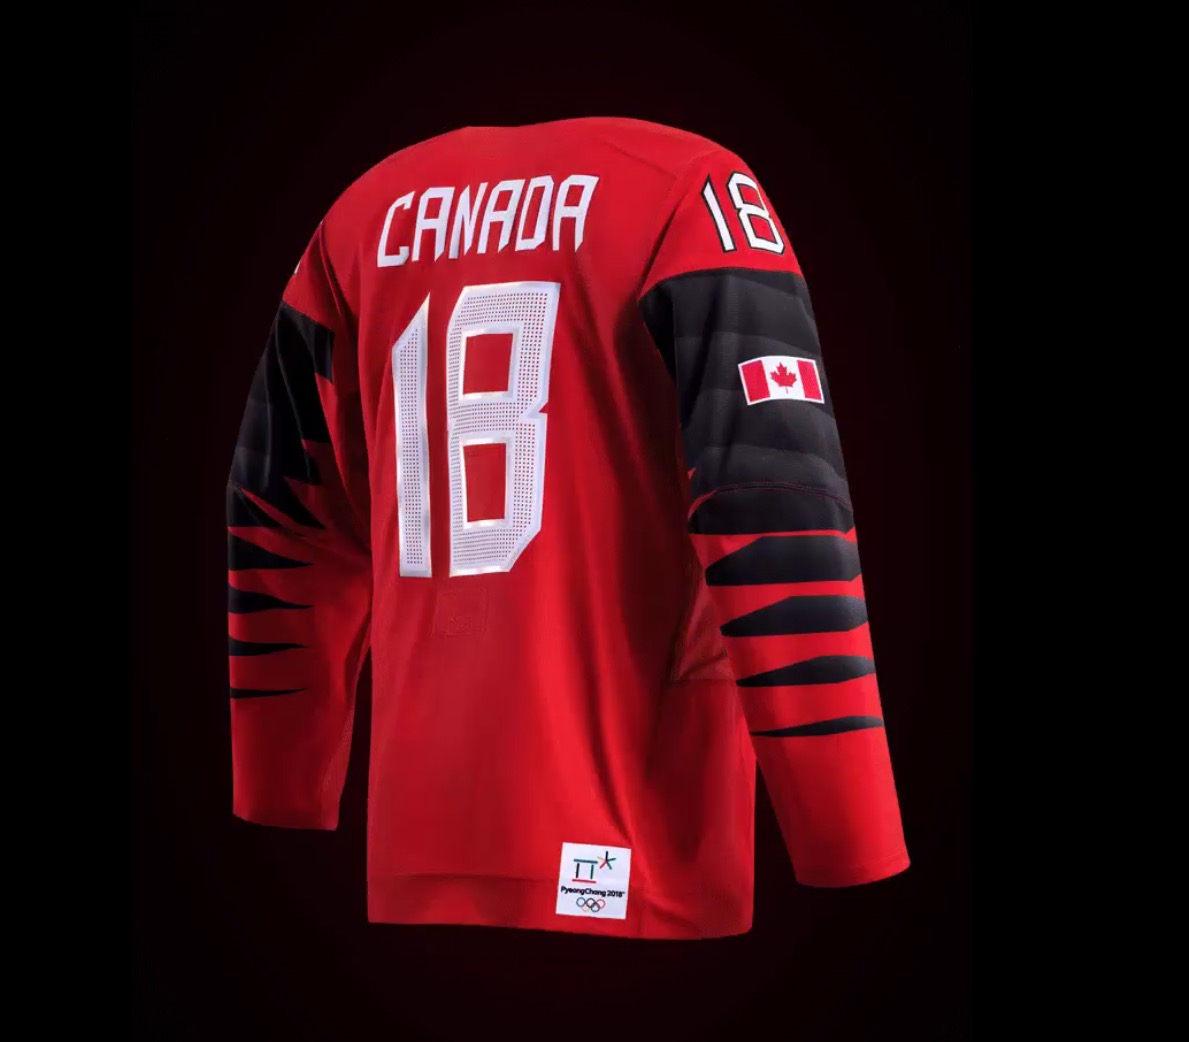 c2cede94e4b 2018 Olympics Hockey Jersey (Update  The rest of the World) - Page 2 ...